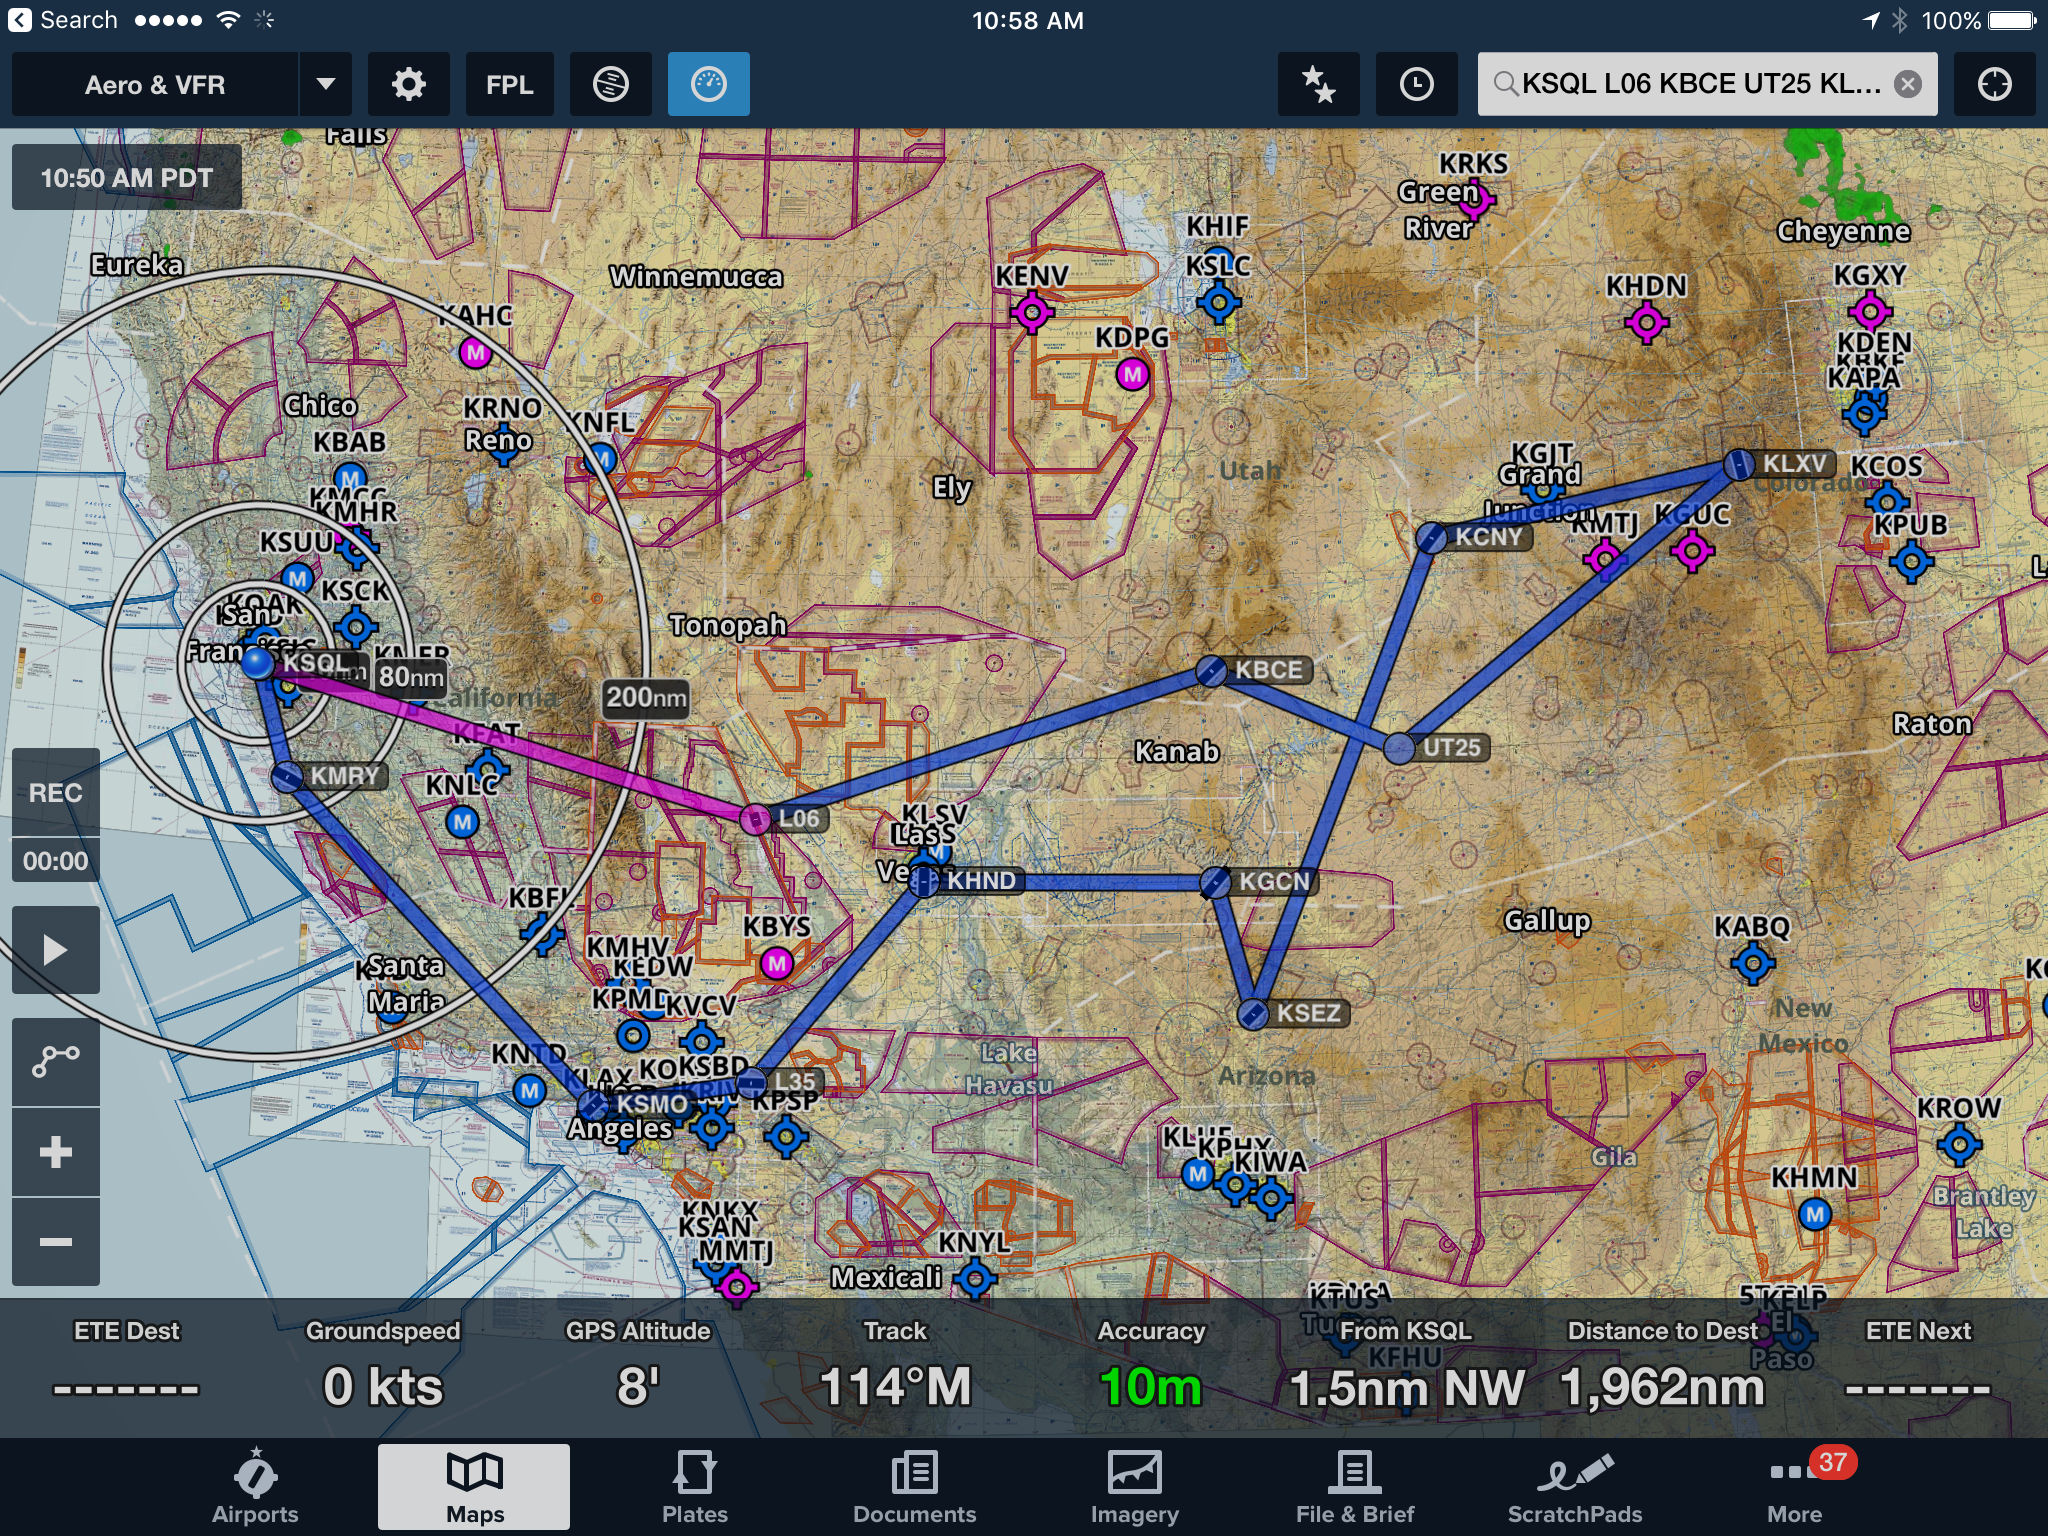 The Southwest Cirrus Tour started from San Carlos and included stops in Death Valley, Bryce Canyon, Monument Valley, Sedona, Grand Canyon, Bar Ten, Las Vegas, Big Bear, Santa Monica, Monterey Bay and back to San Carlos.